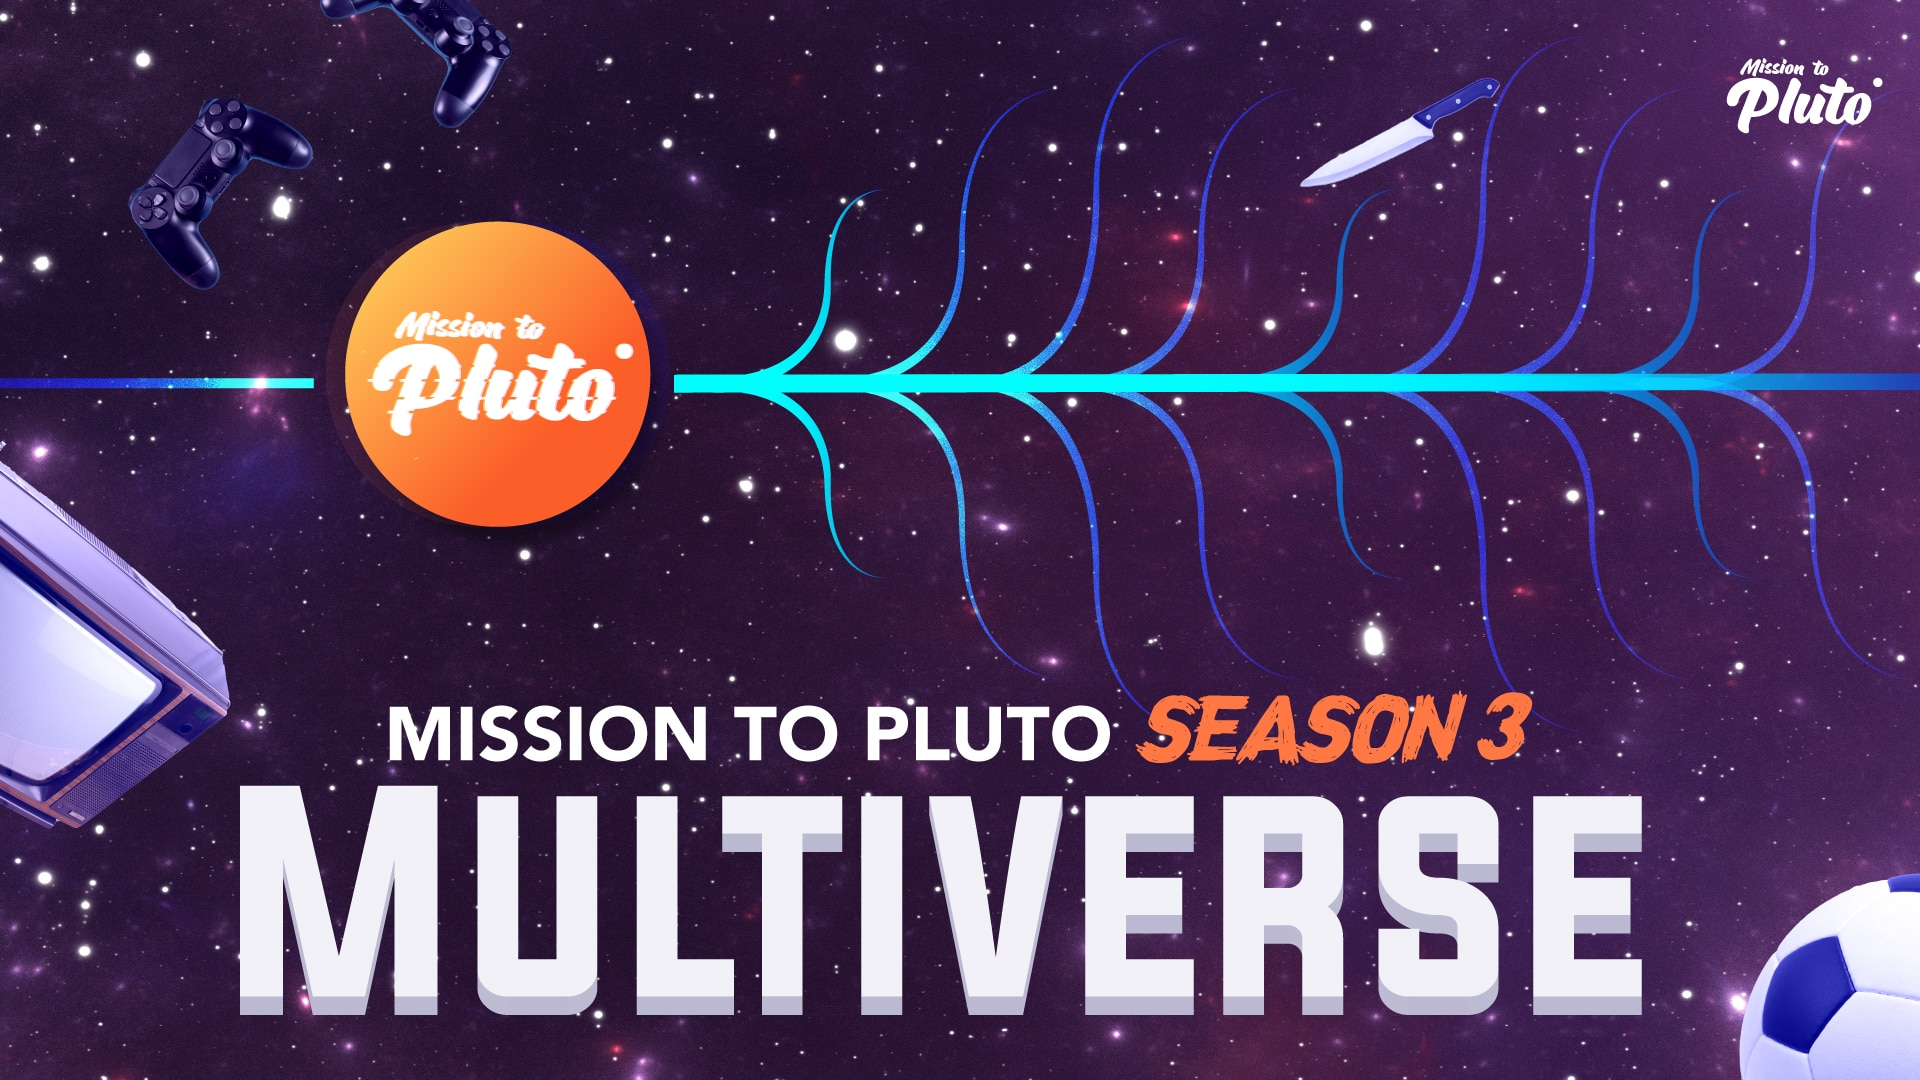 plutomultiverse